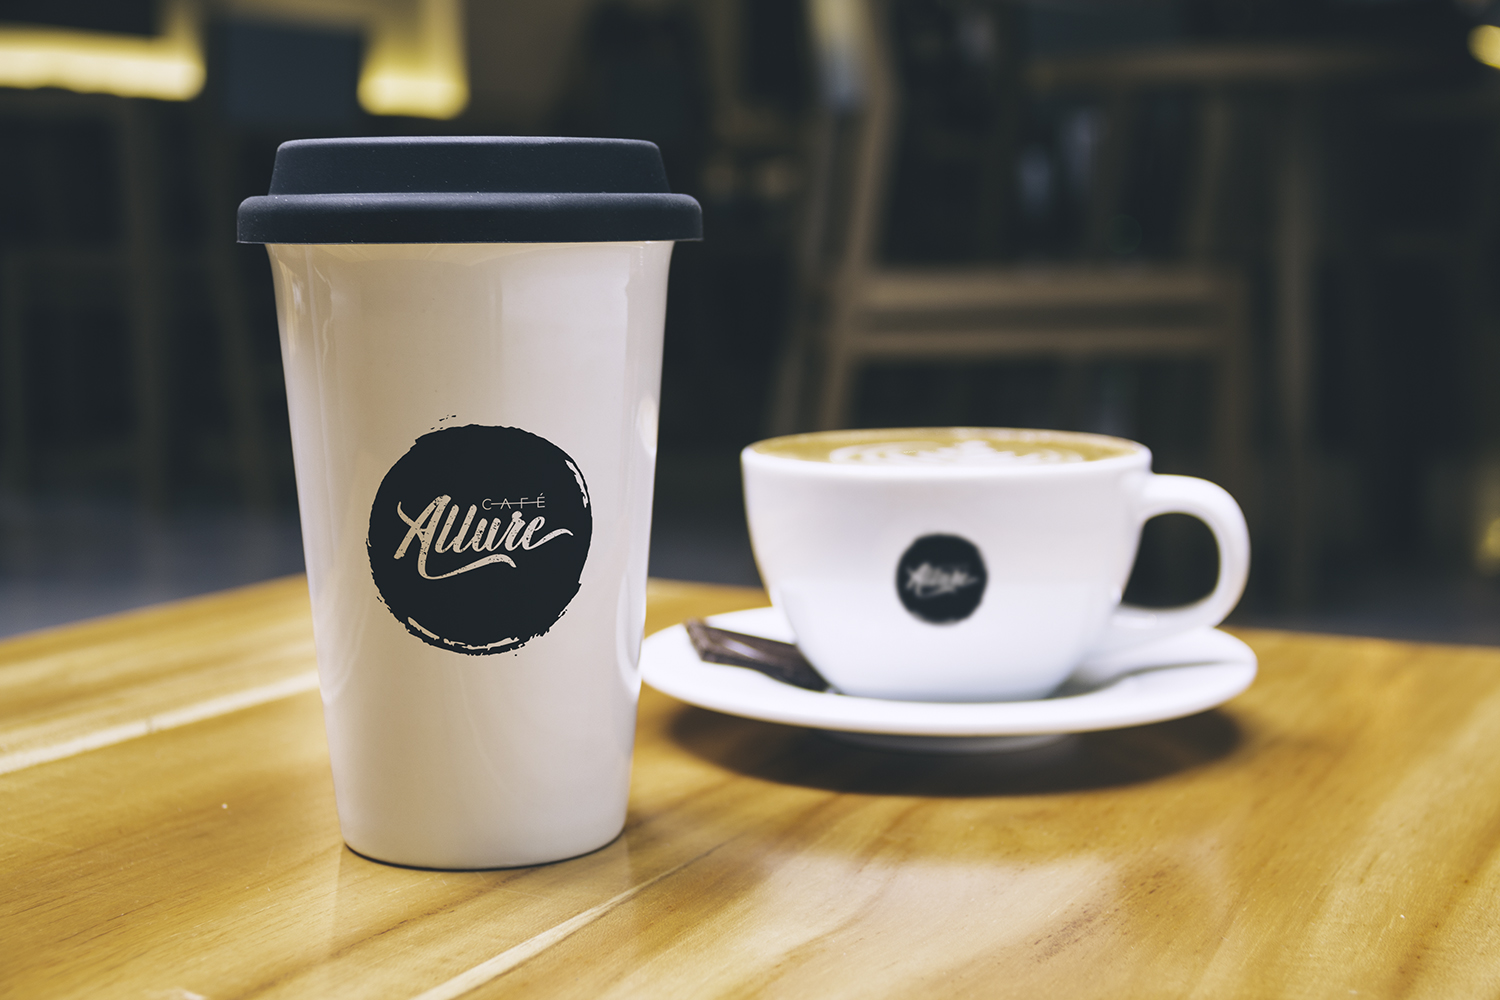 Cafe Allure coffee